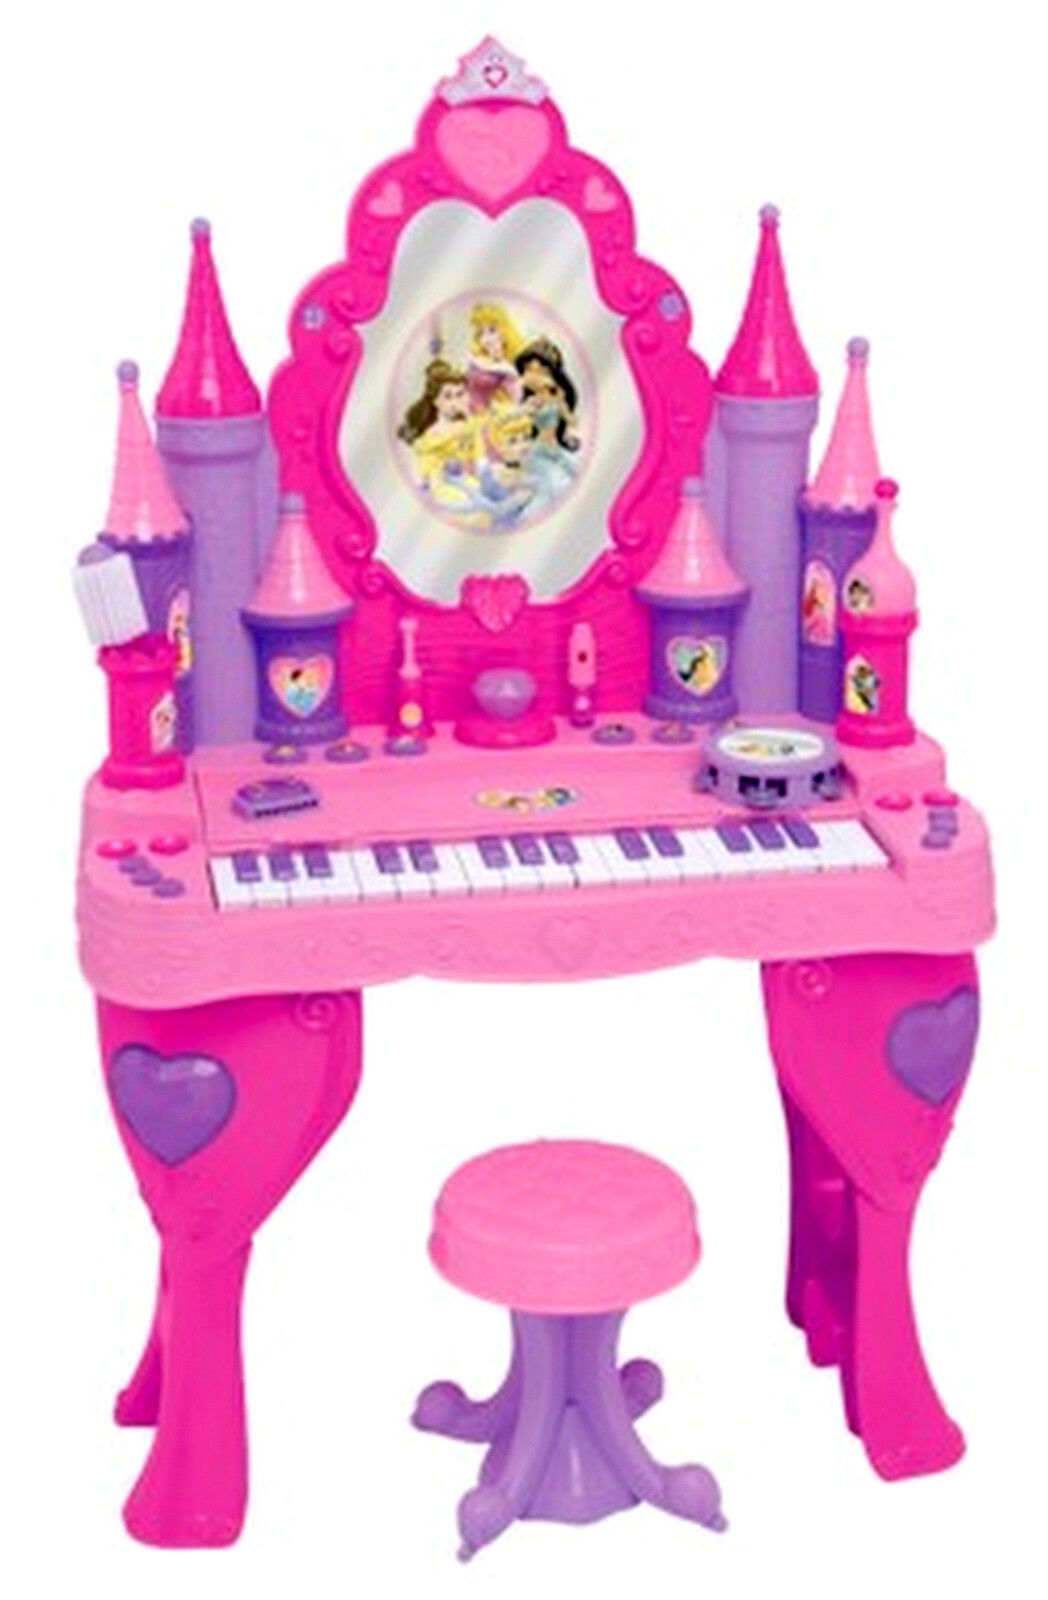 Disney Princess Piano Keyboard Vanity Salon Interactive